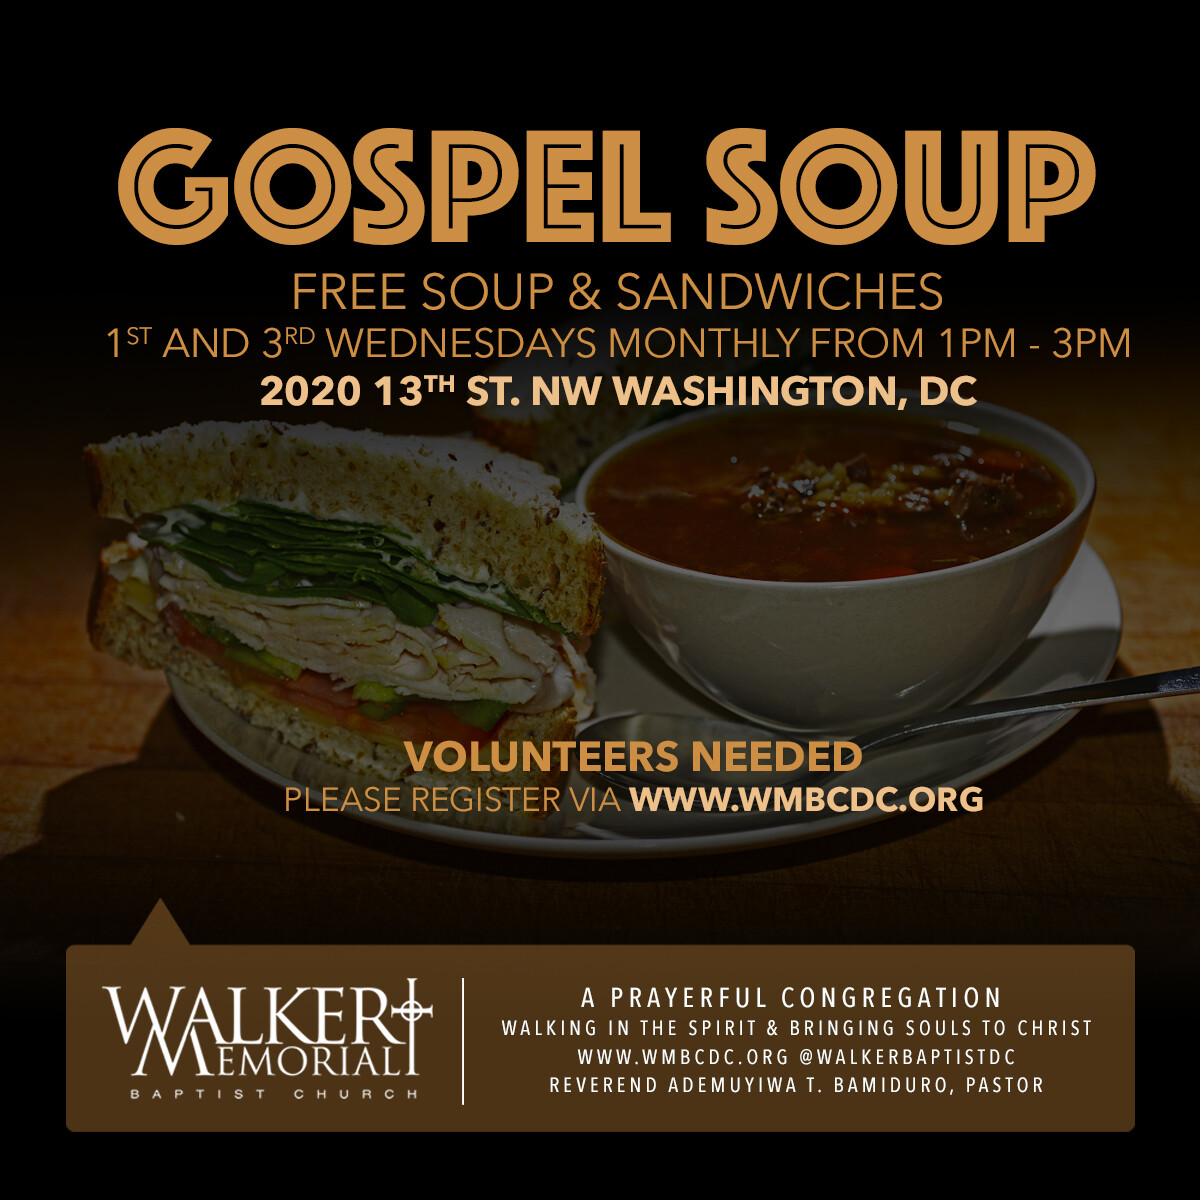 Gospel Soup: Free Soup & Sandwiches